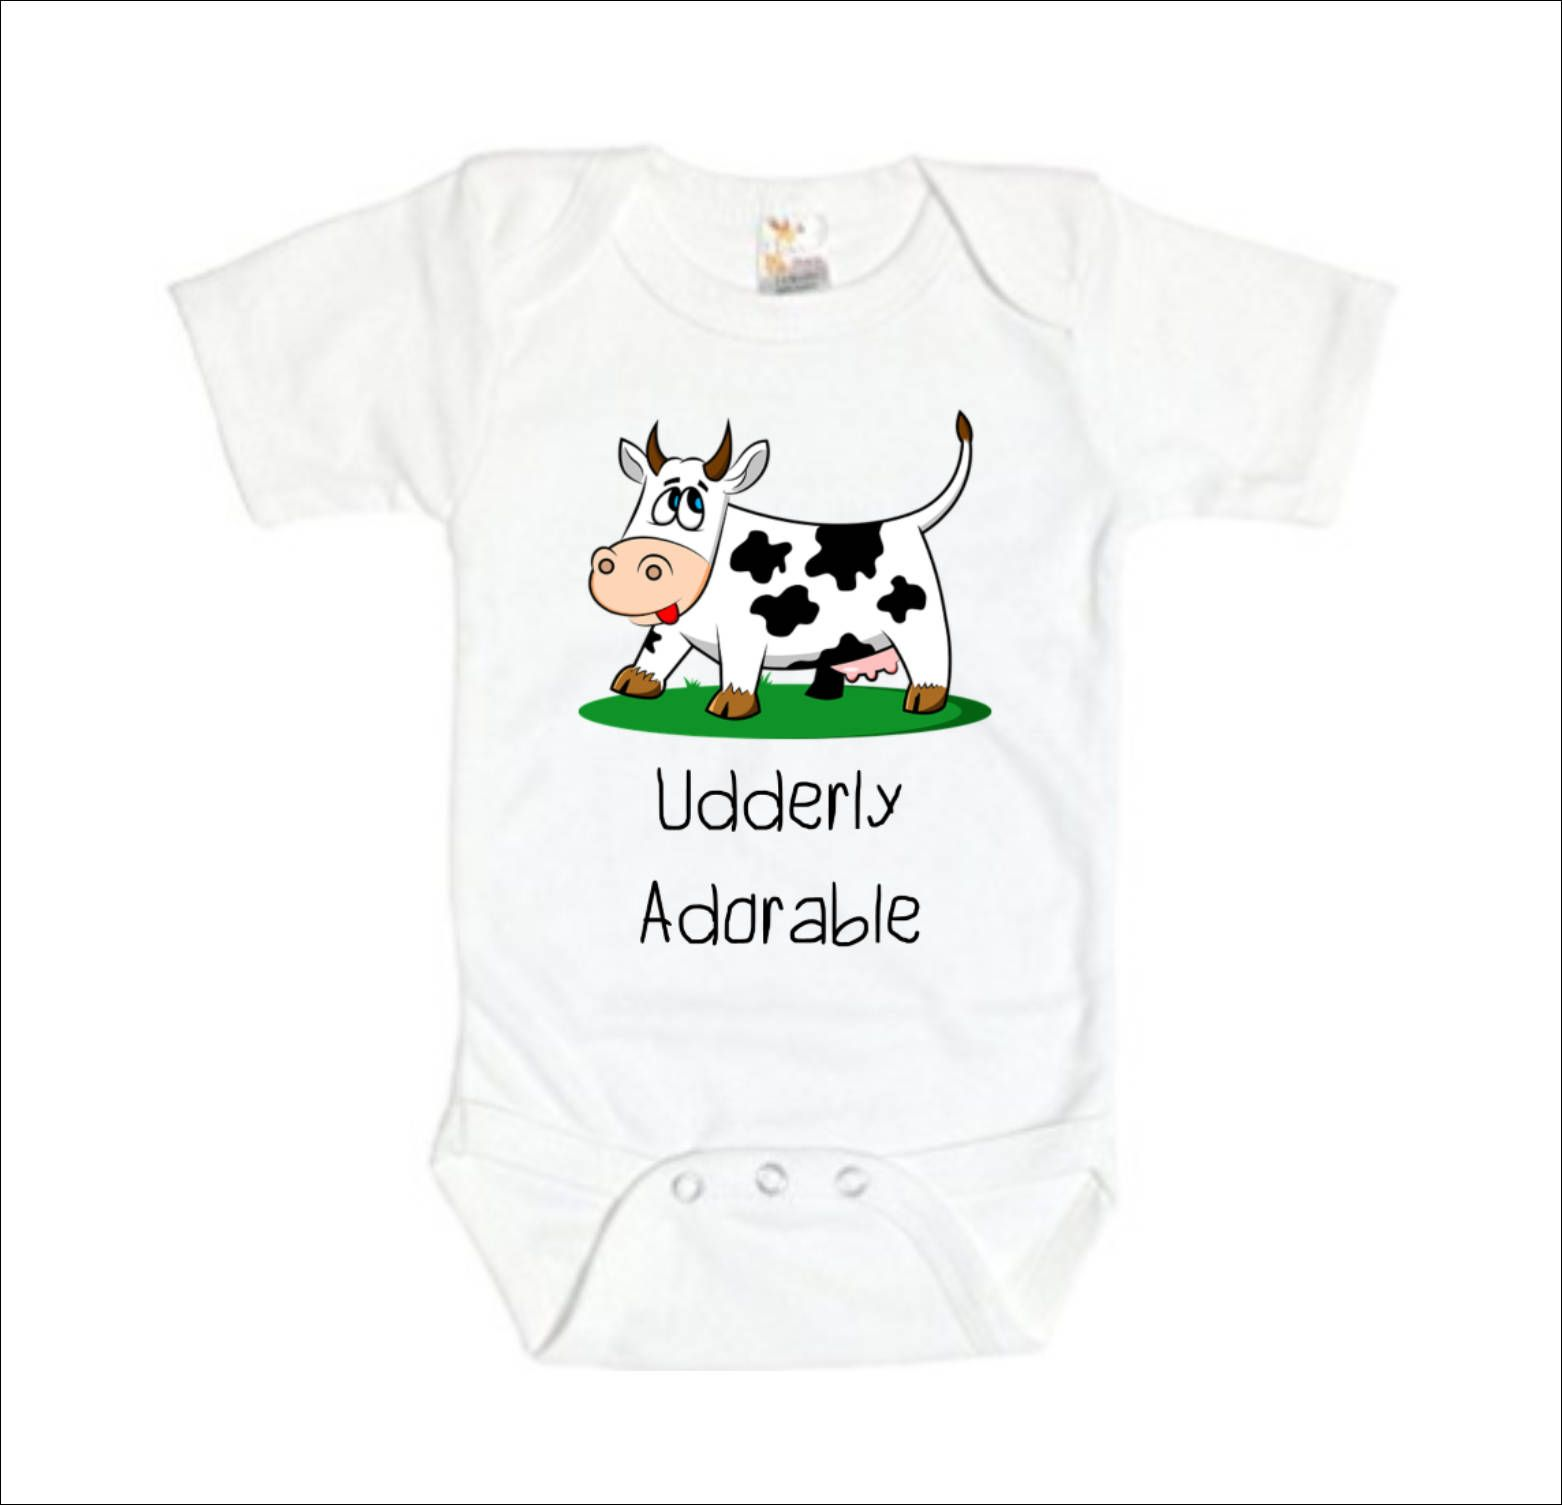 f4d3ba2aa Cow Baby Outfit, Udderly Adorable Clothes, Cow Baby Shower, Farmer Baby  Clothes, Farm Baby Clothes, Farm Animals Gift, Moo Cow Shirt, ...